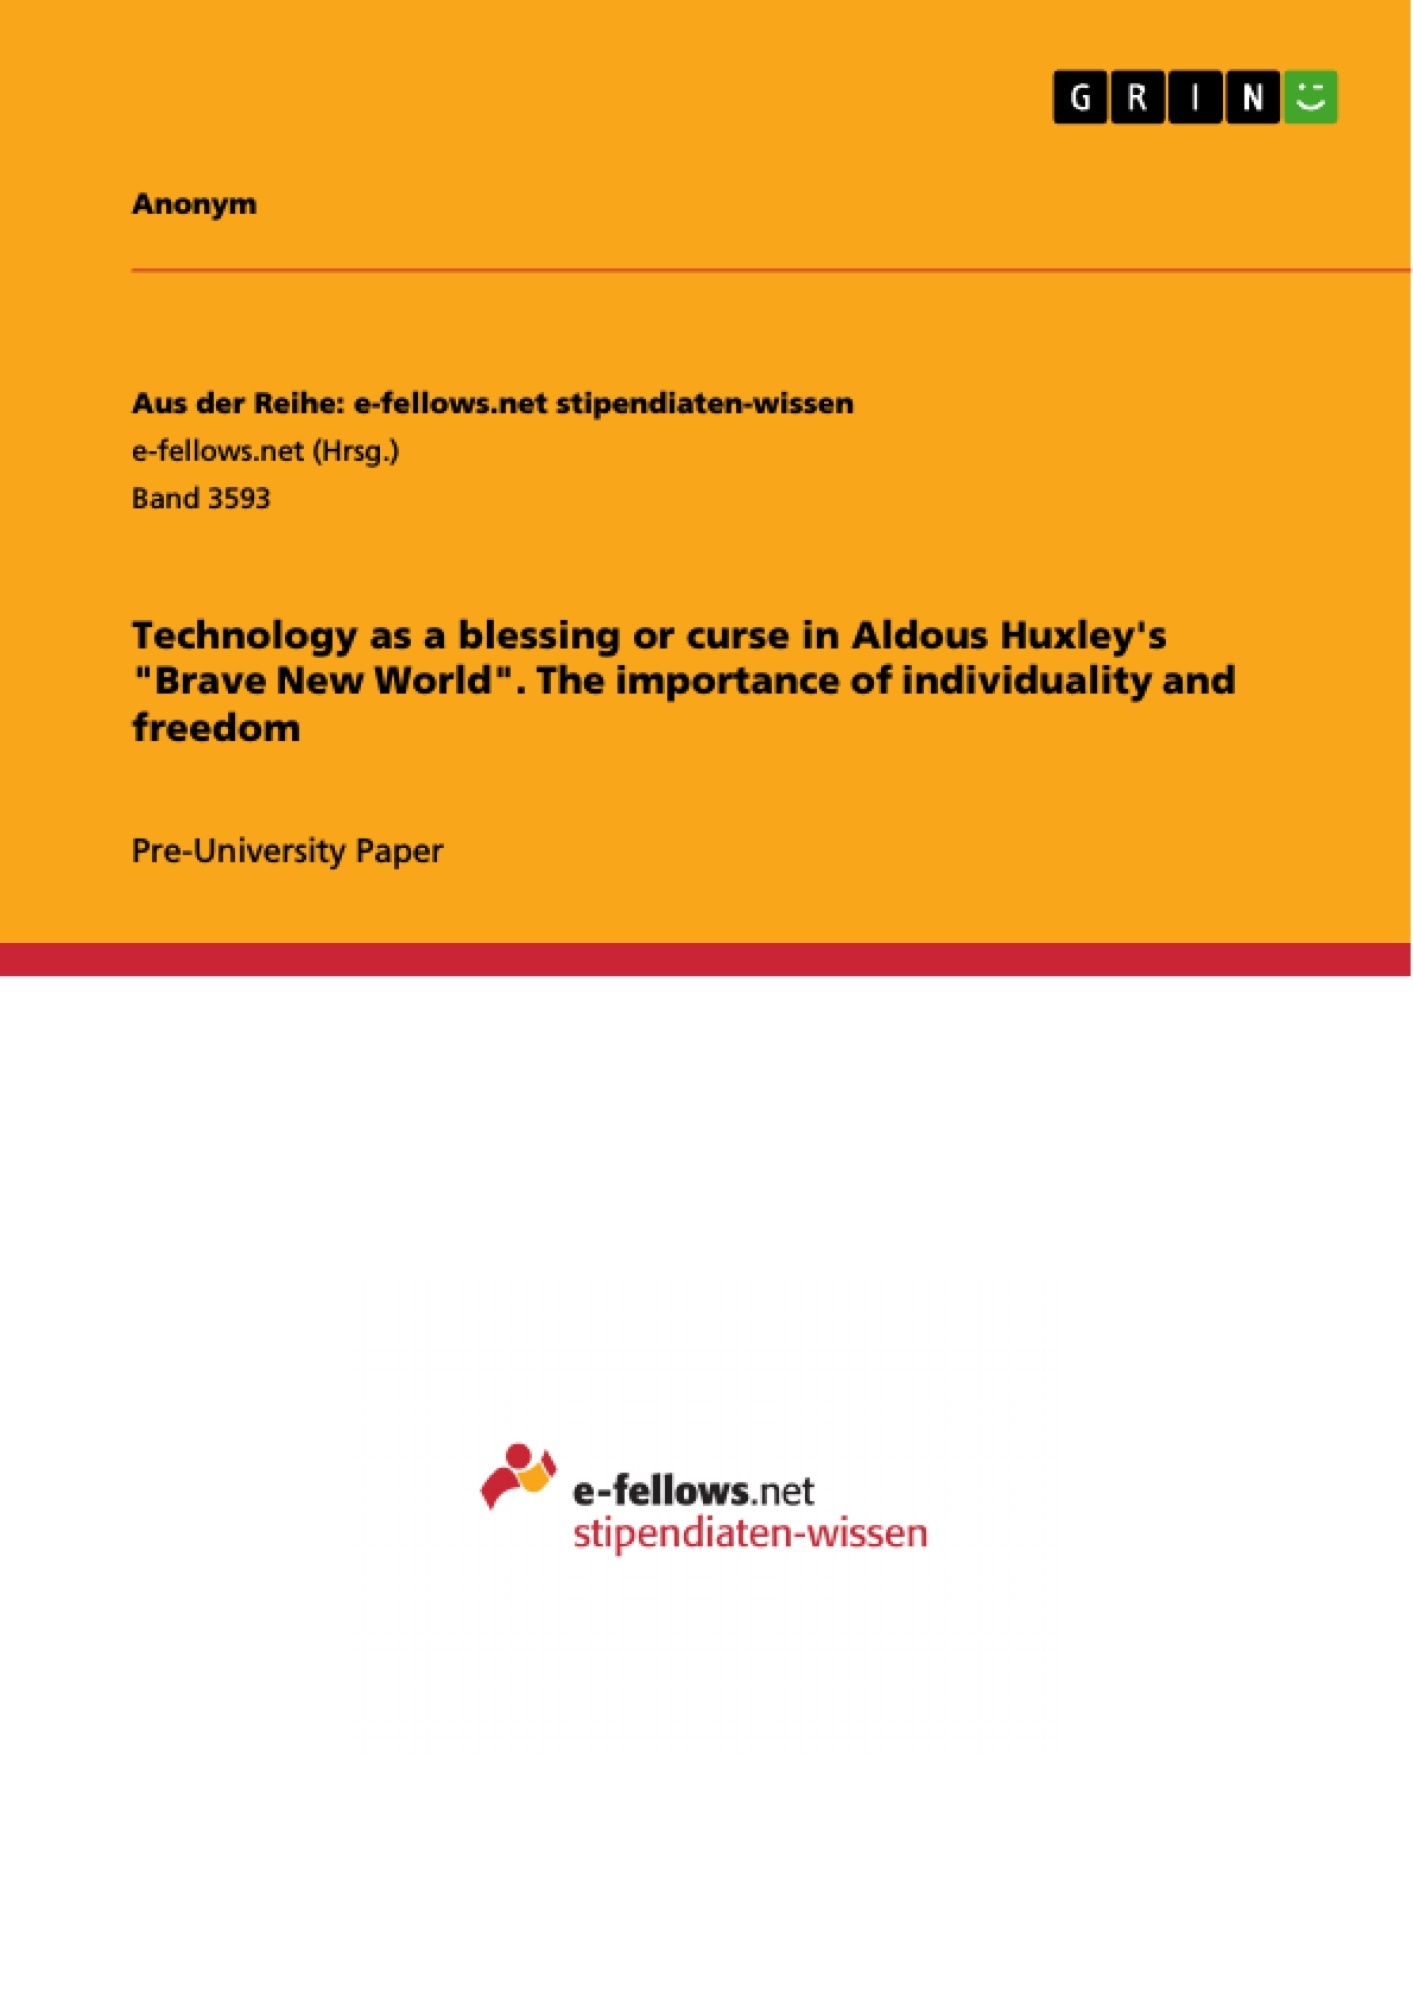 """Title: Technology as a blessing or curse in Aldous Huxley's """"Brave New World"""". The importance of individuality and freedom"""